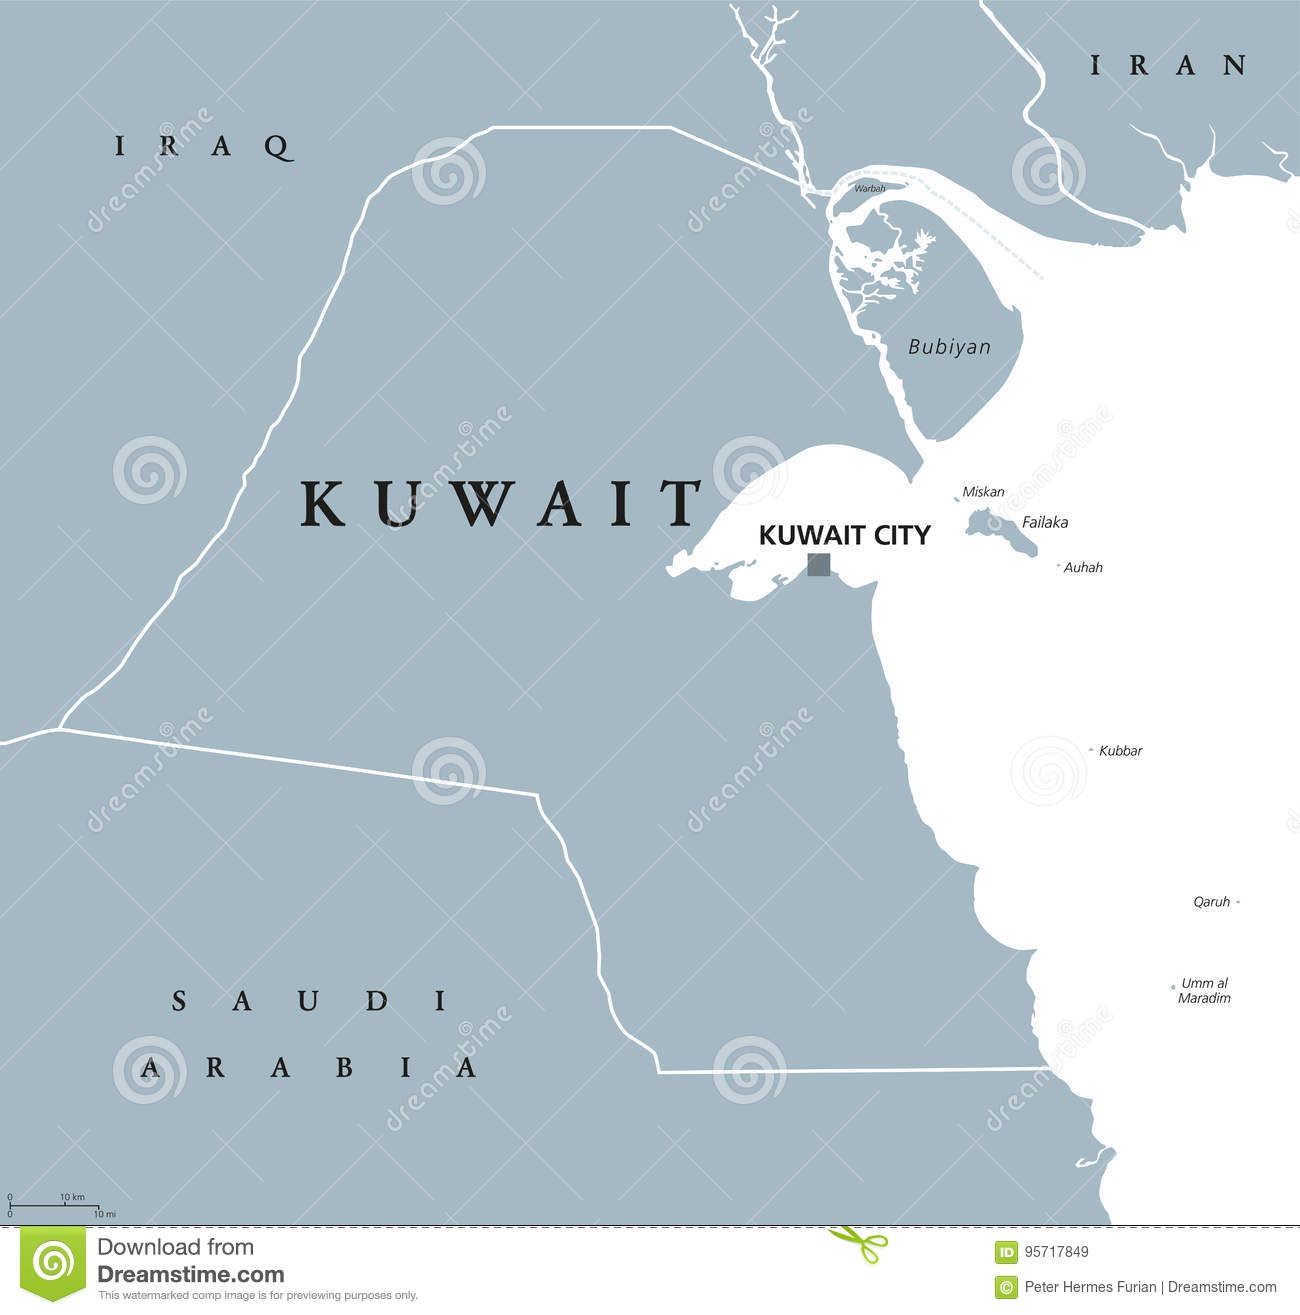 Kuwait political map stock vector. Illustration of city ...